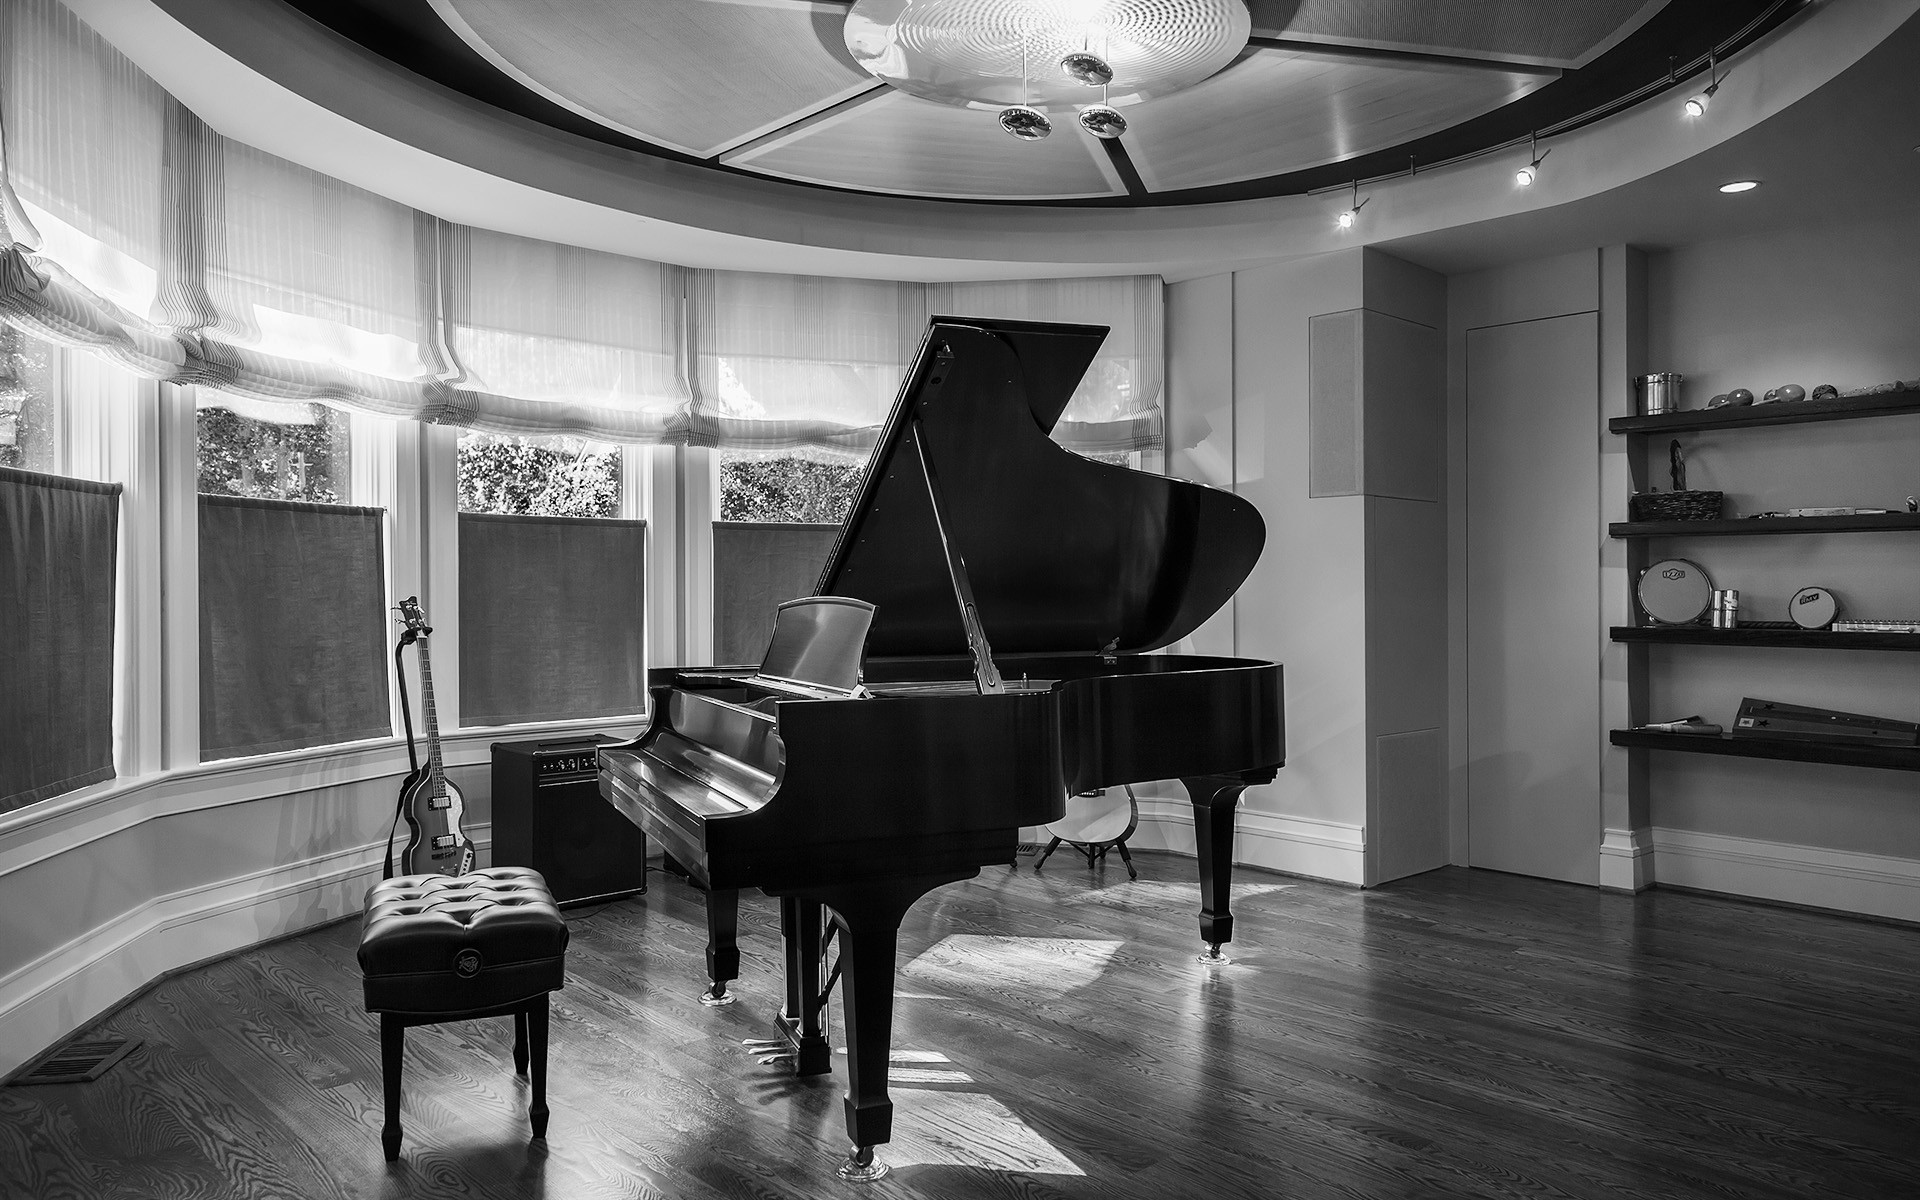 Black and White Piano